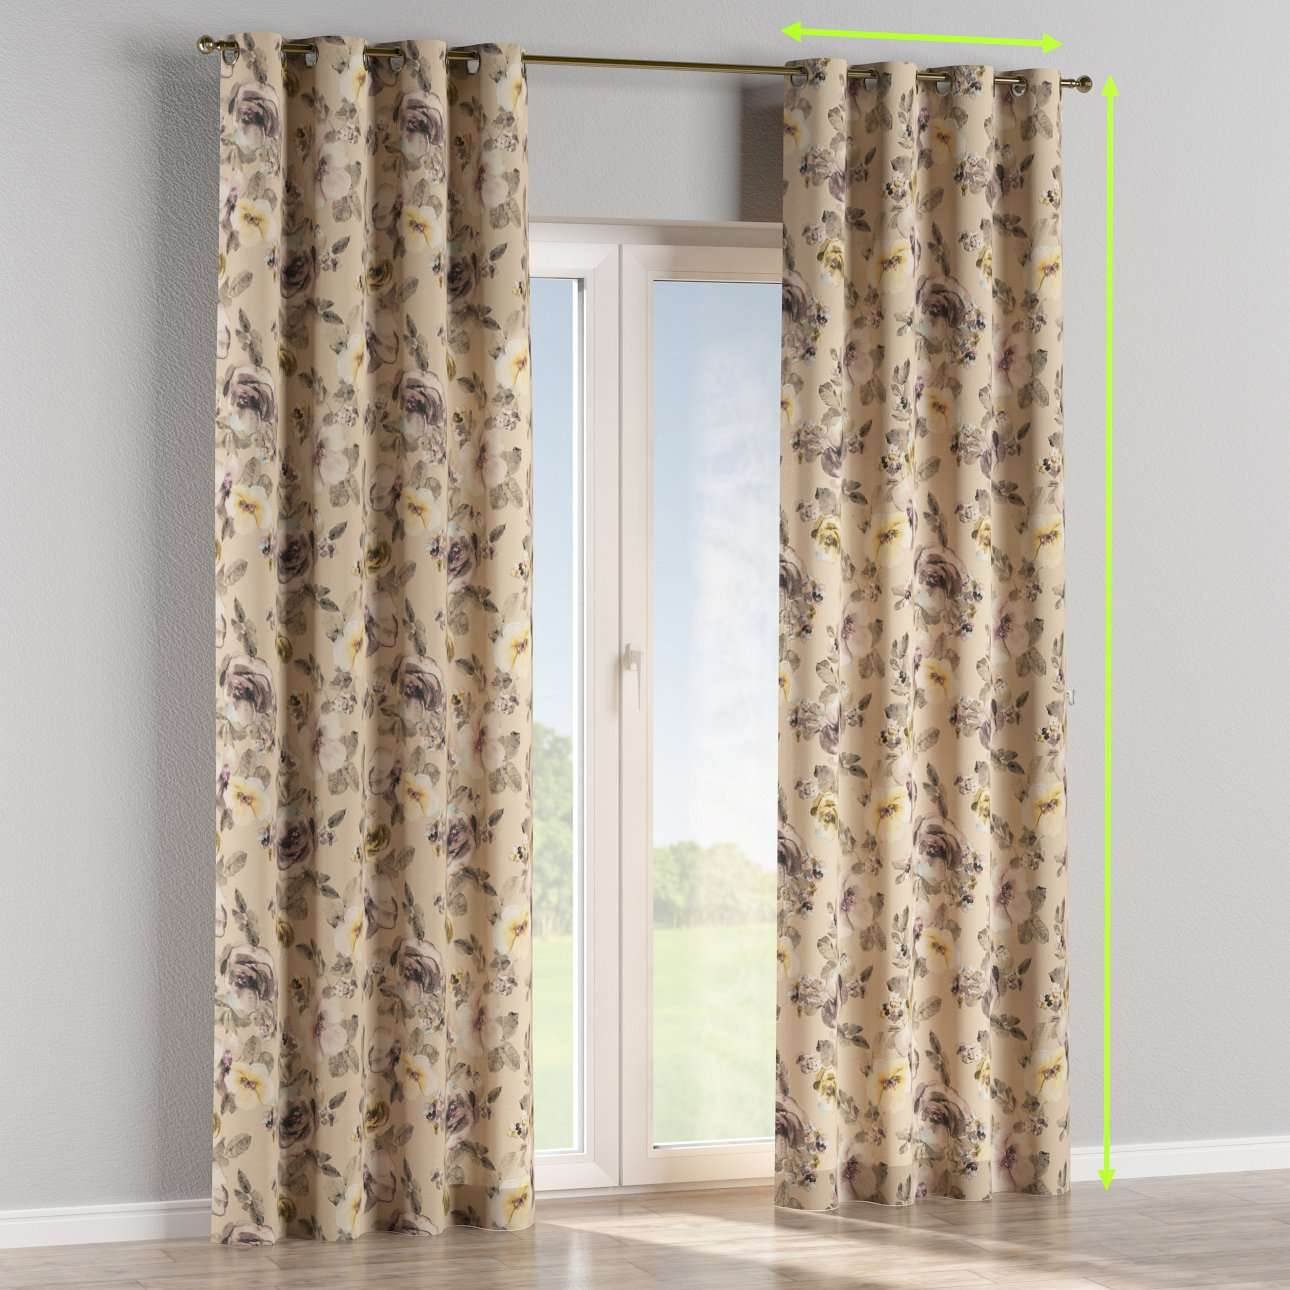 Eyelet lined curtains in collection Londres, fabric: 140-44